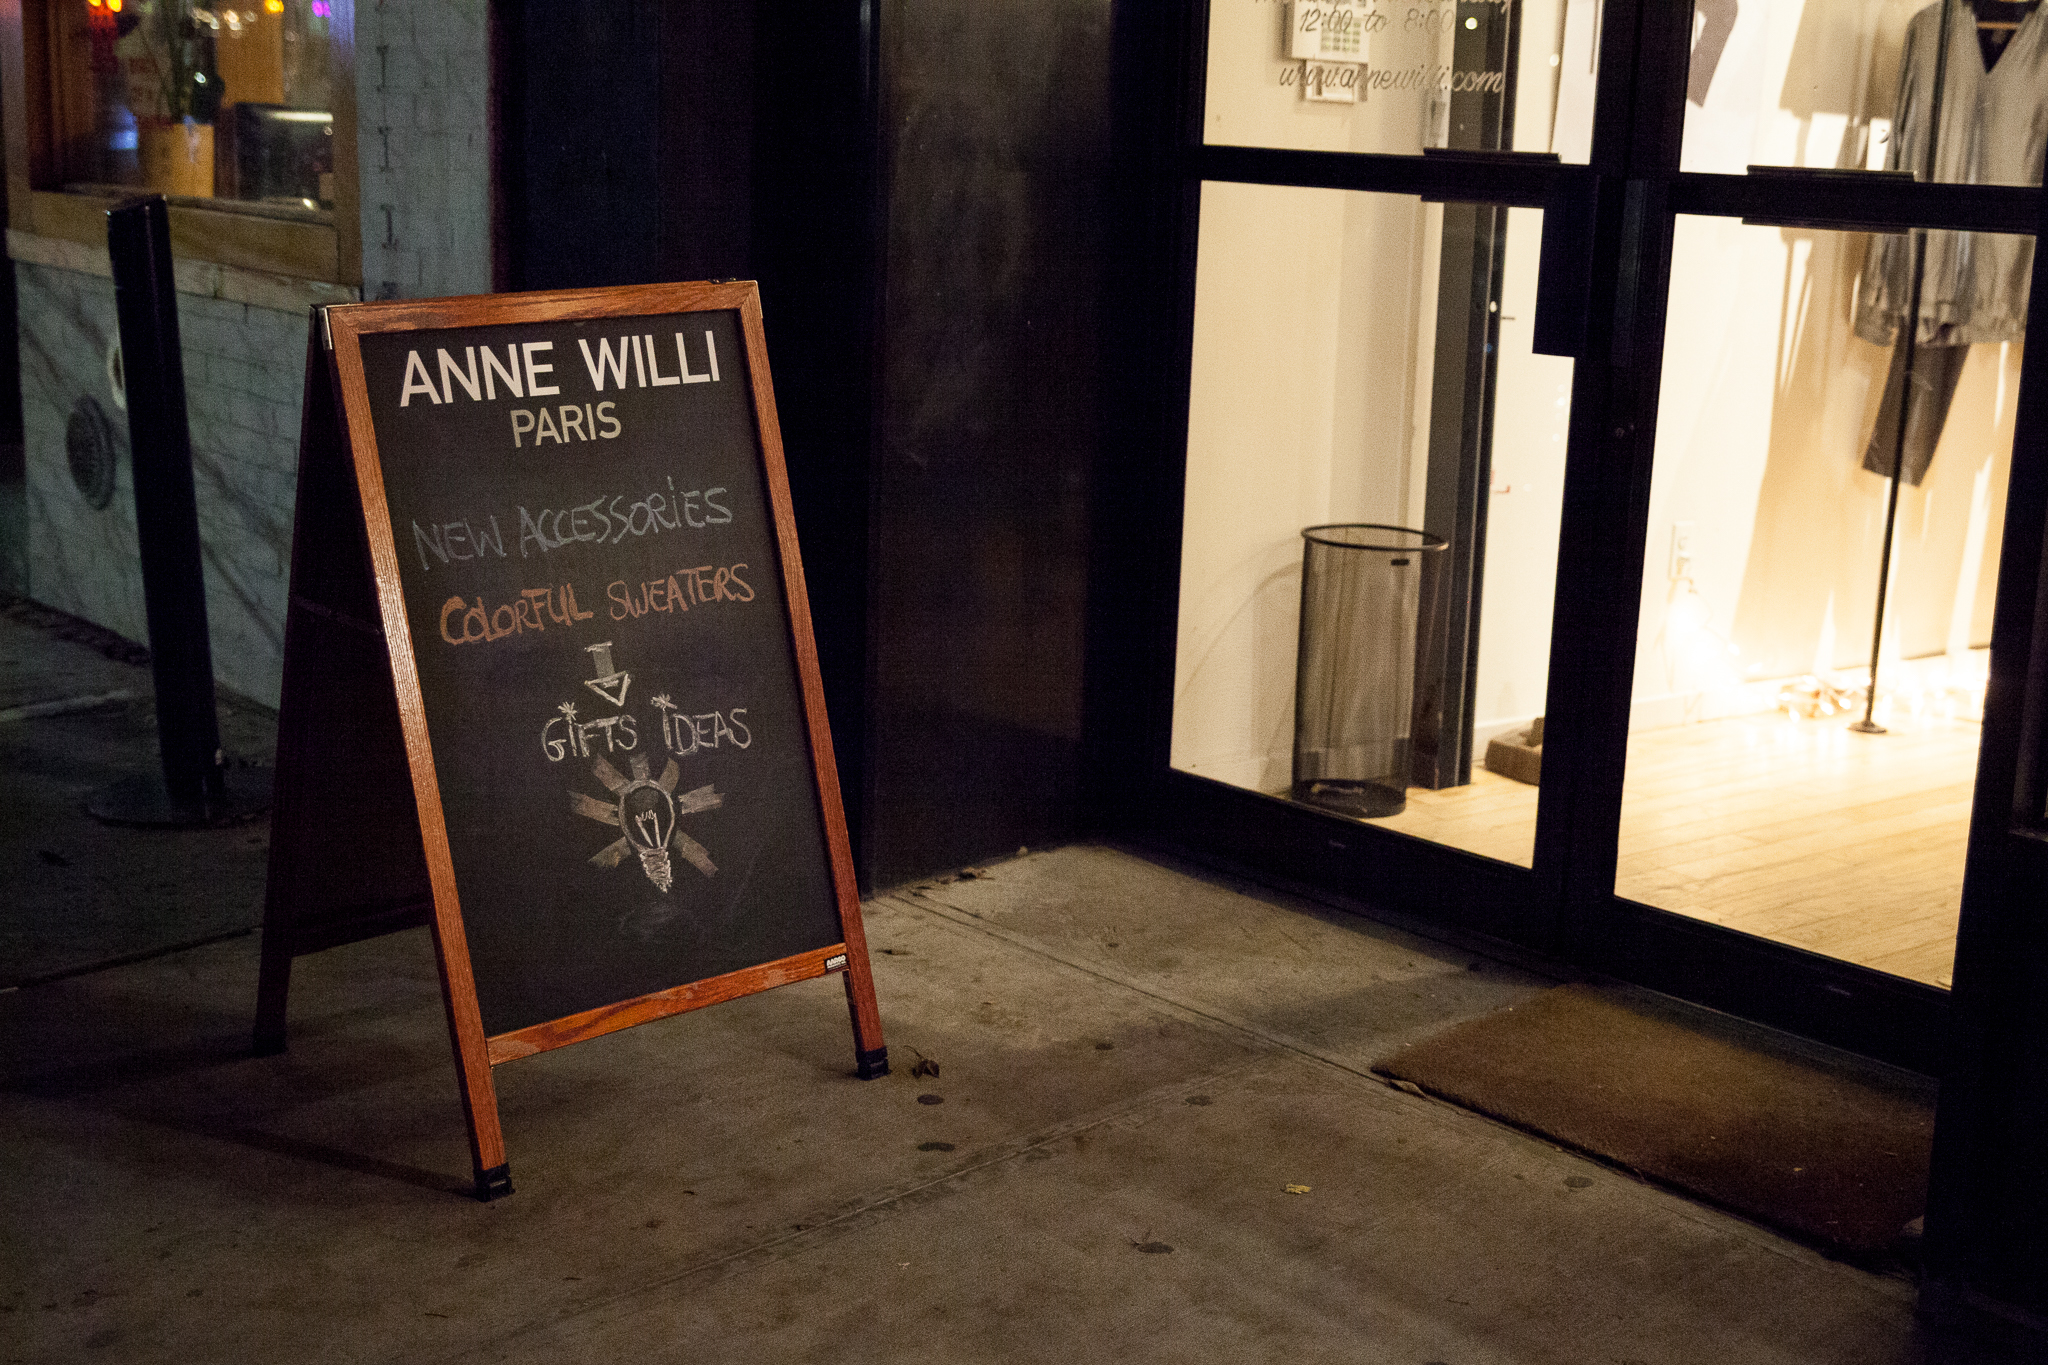 camuglia_anne-willi-holiday-party-nyc-2018_0025_2048.jpg